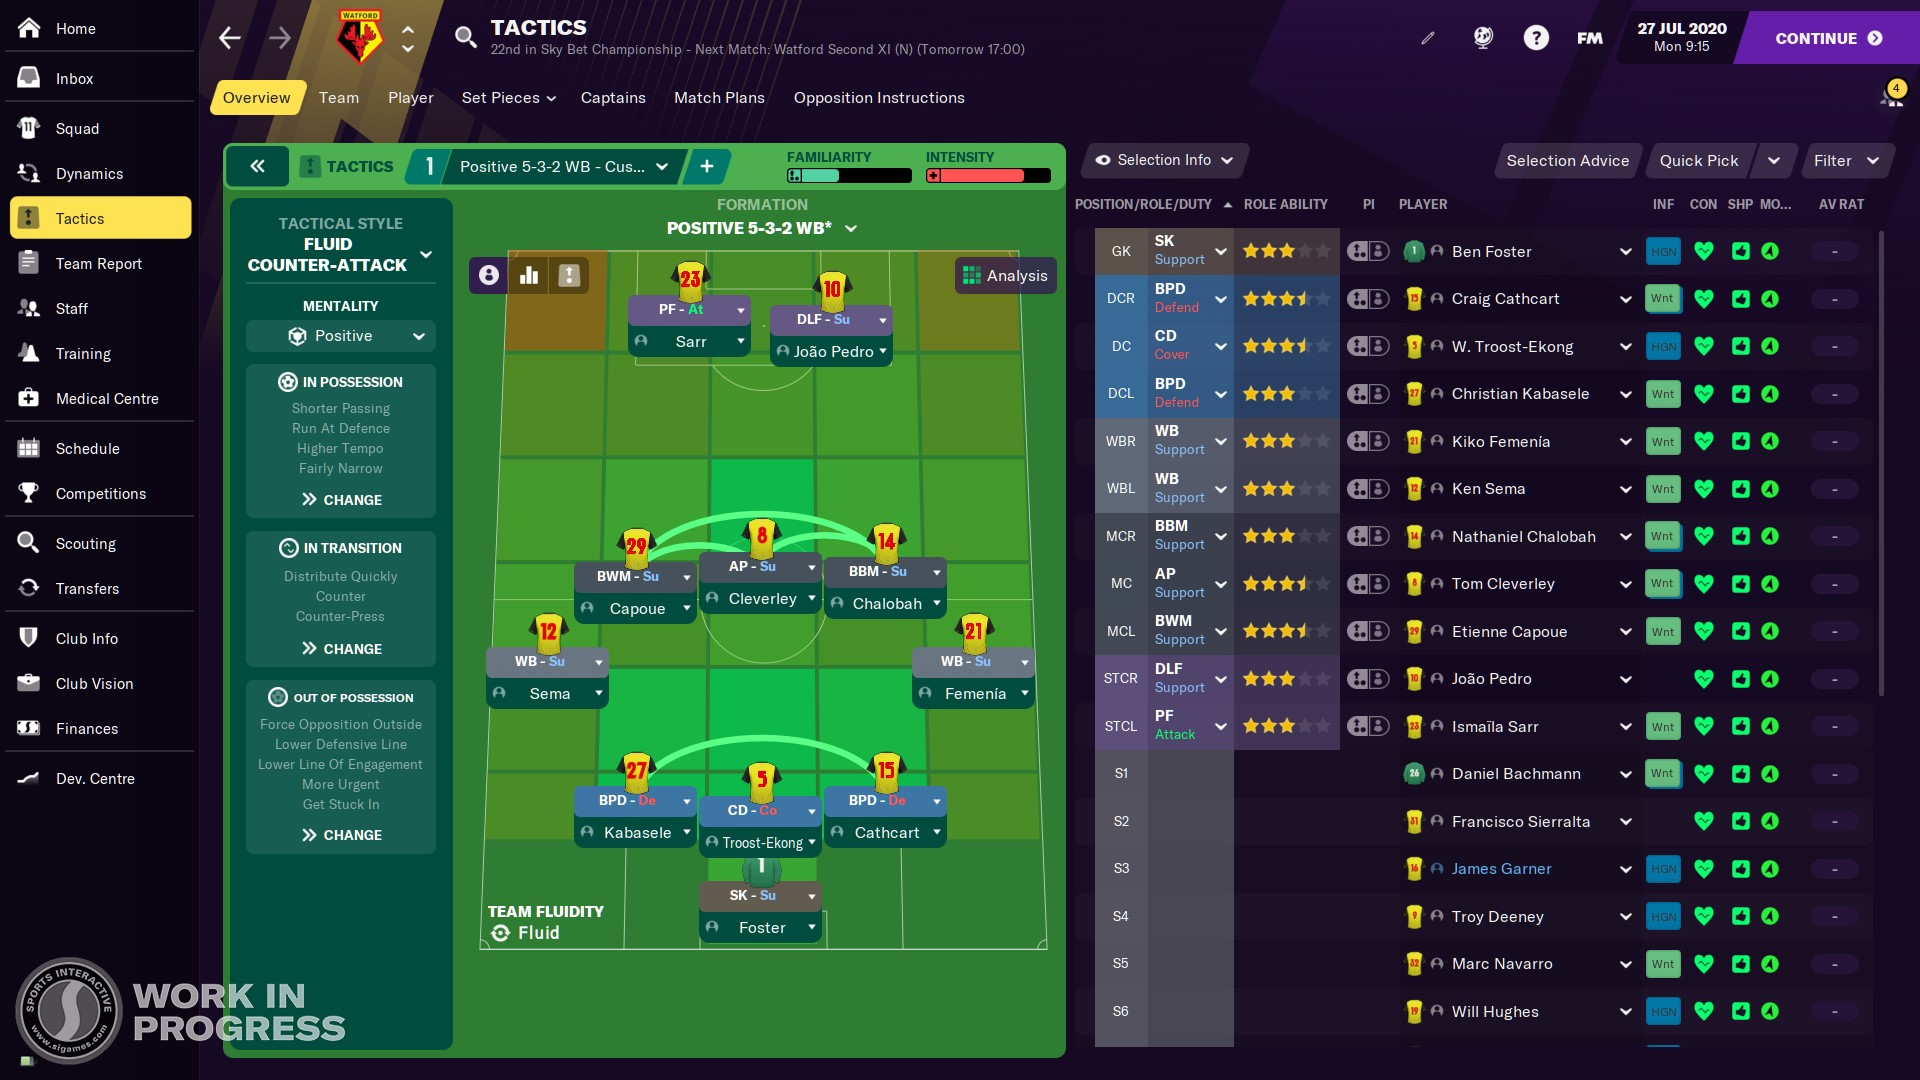 Football manager 2021 tactics goals galore betting betting on fantasy sports